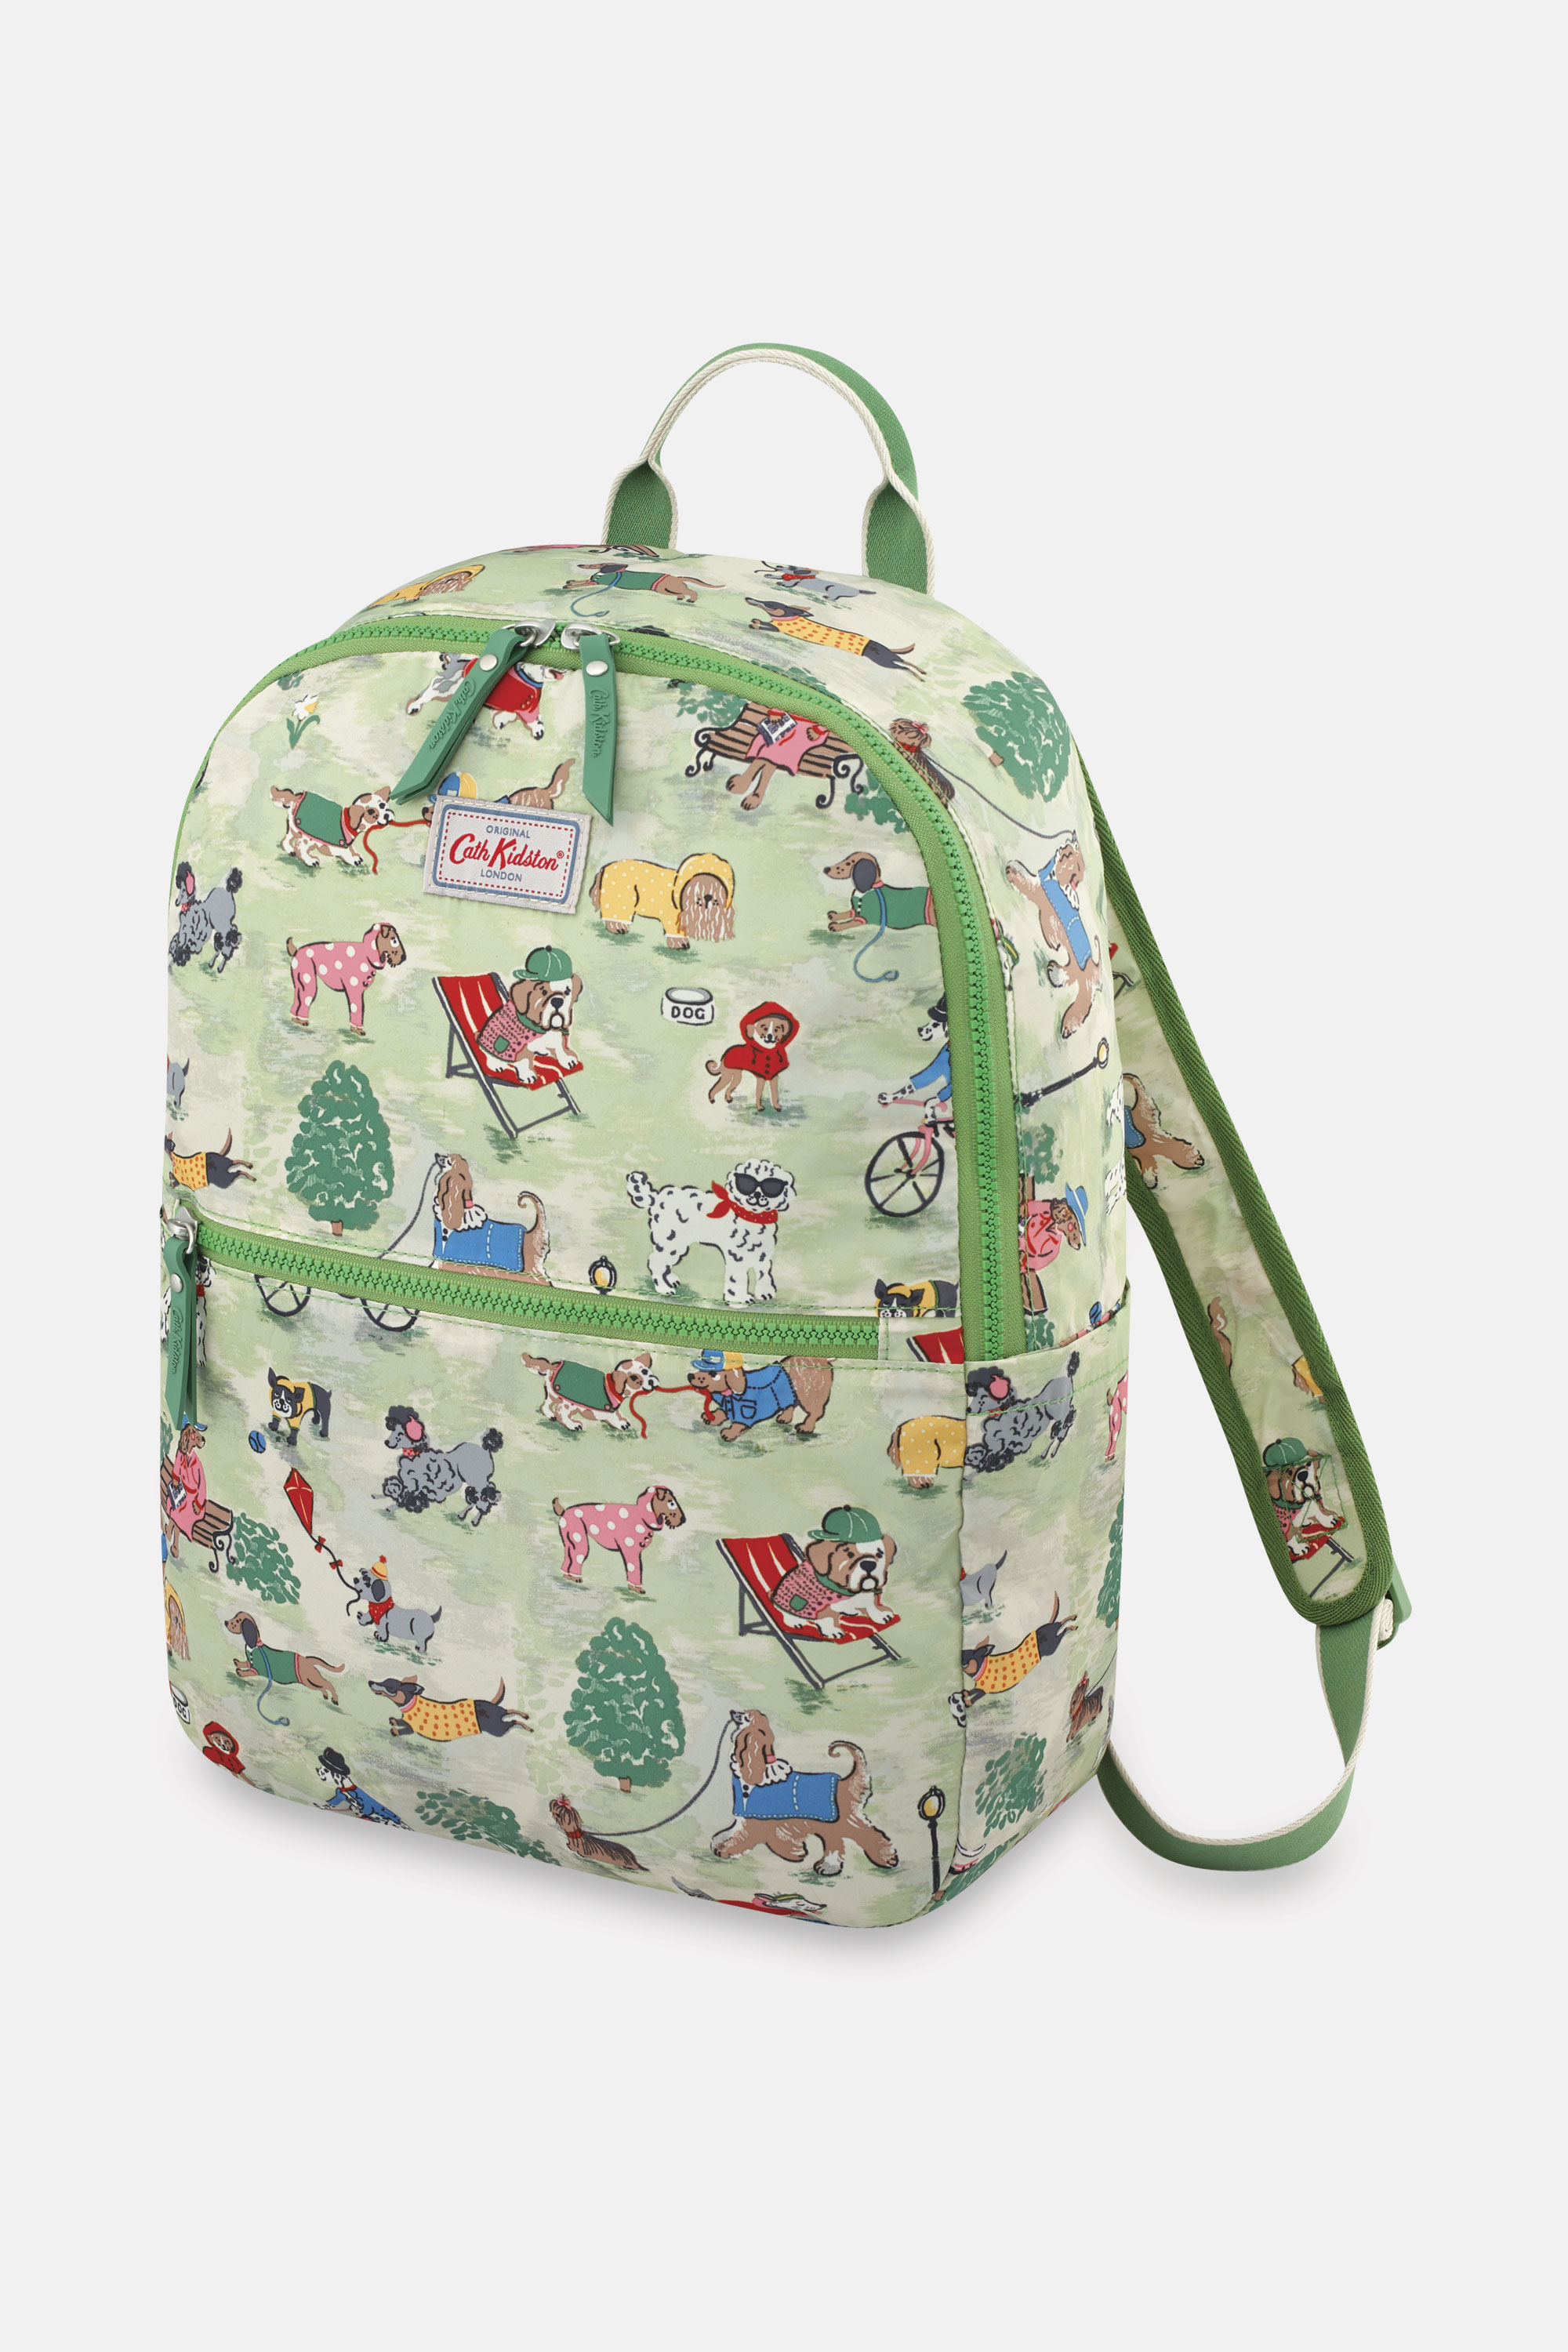 Cath Kidston Park Dogs Foldaway Backpack in Green